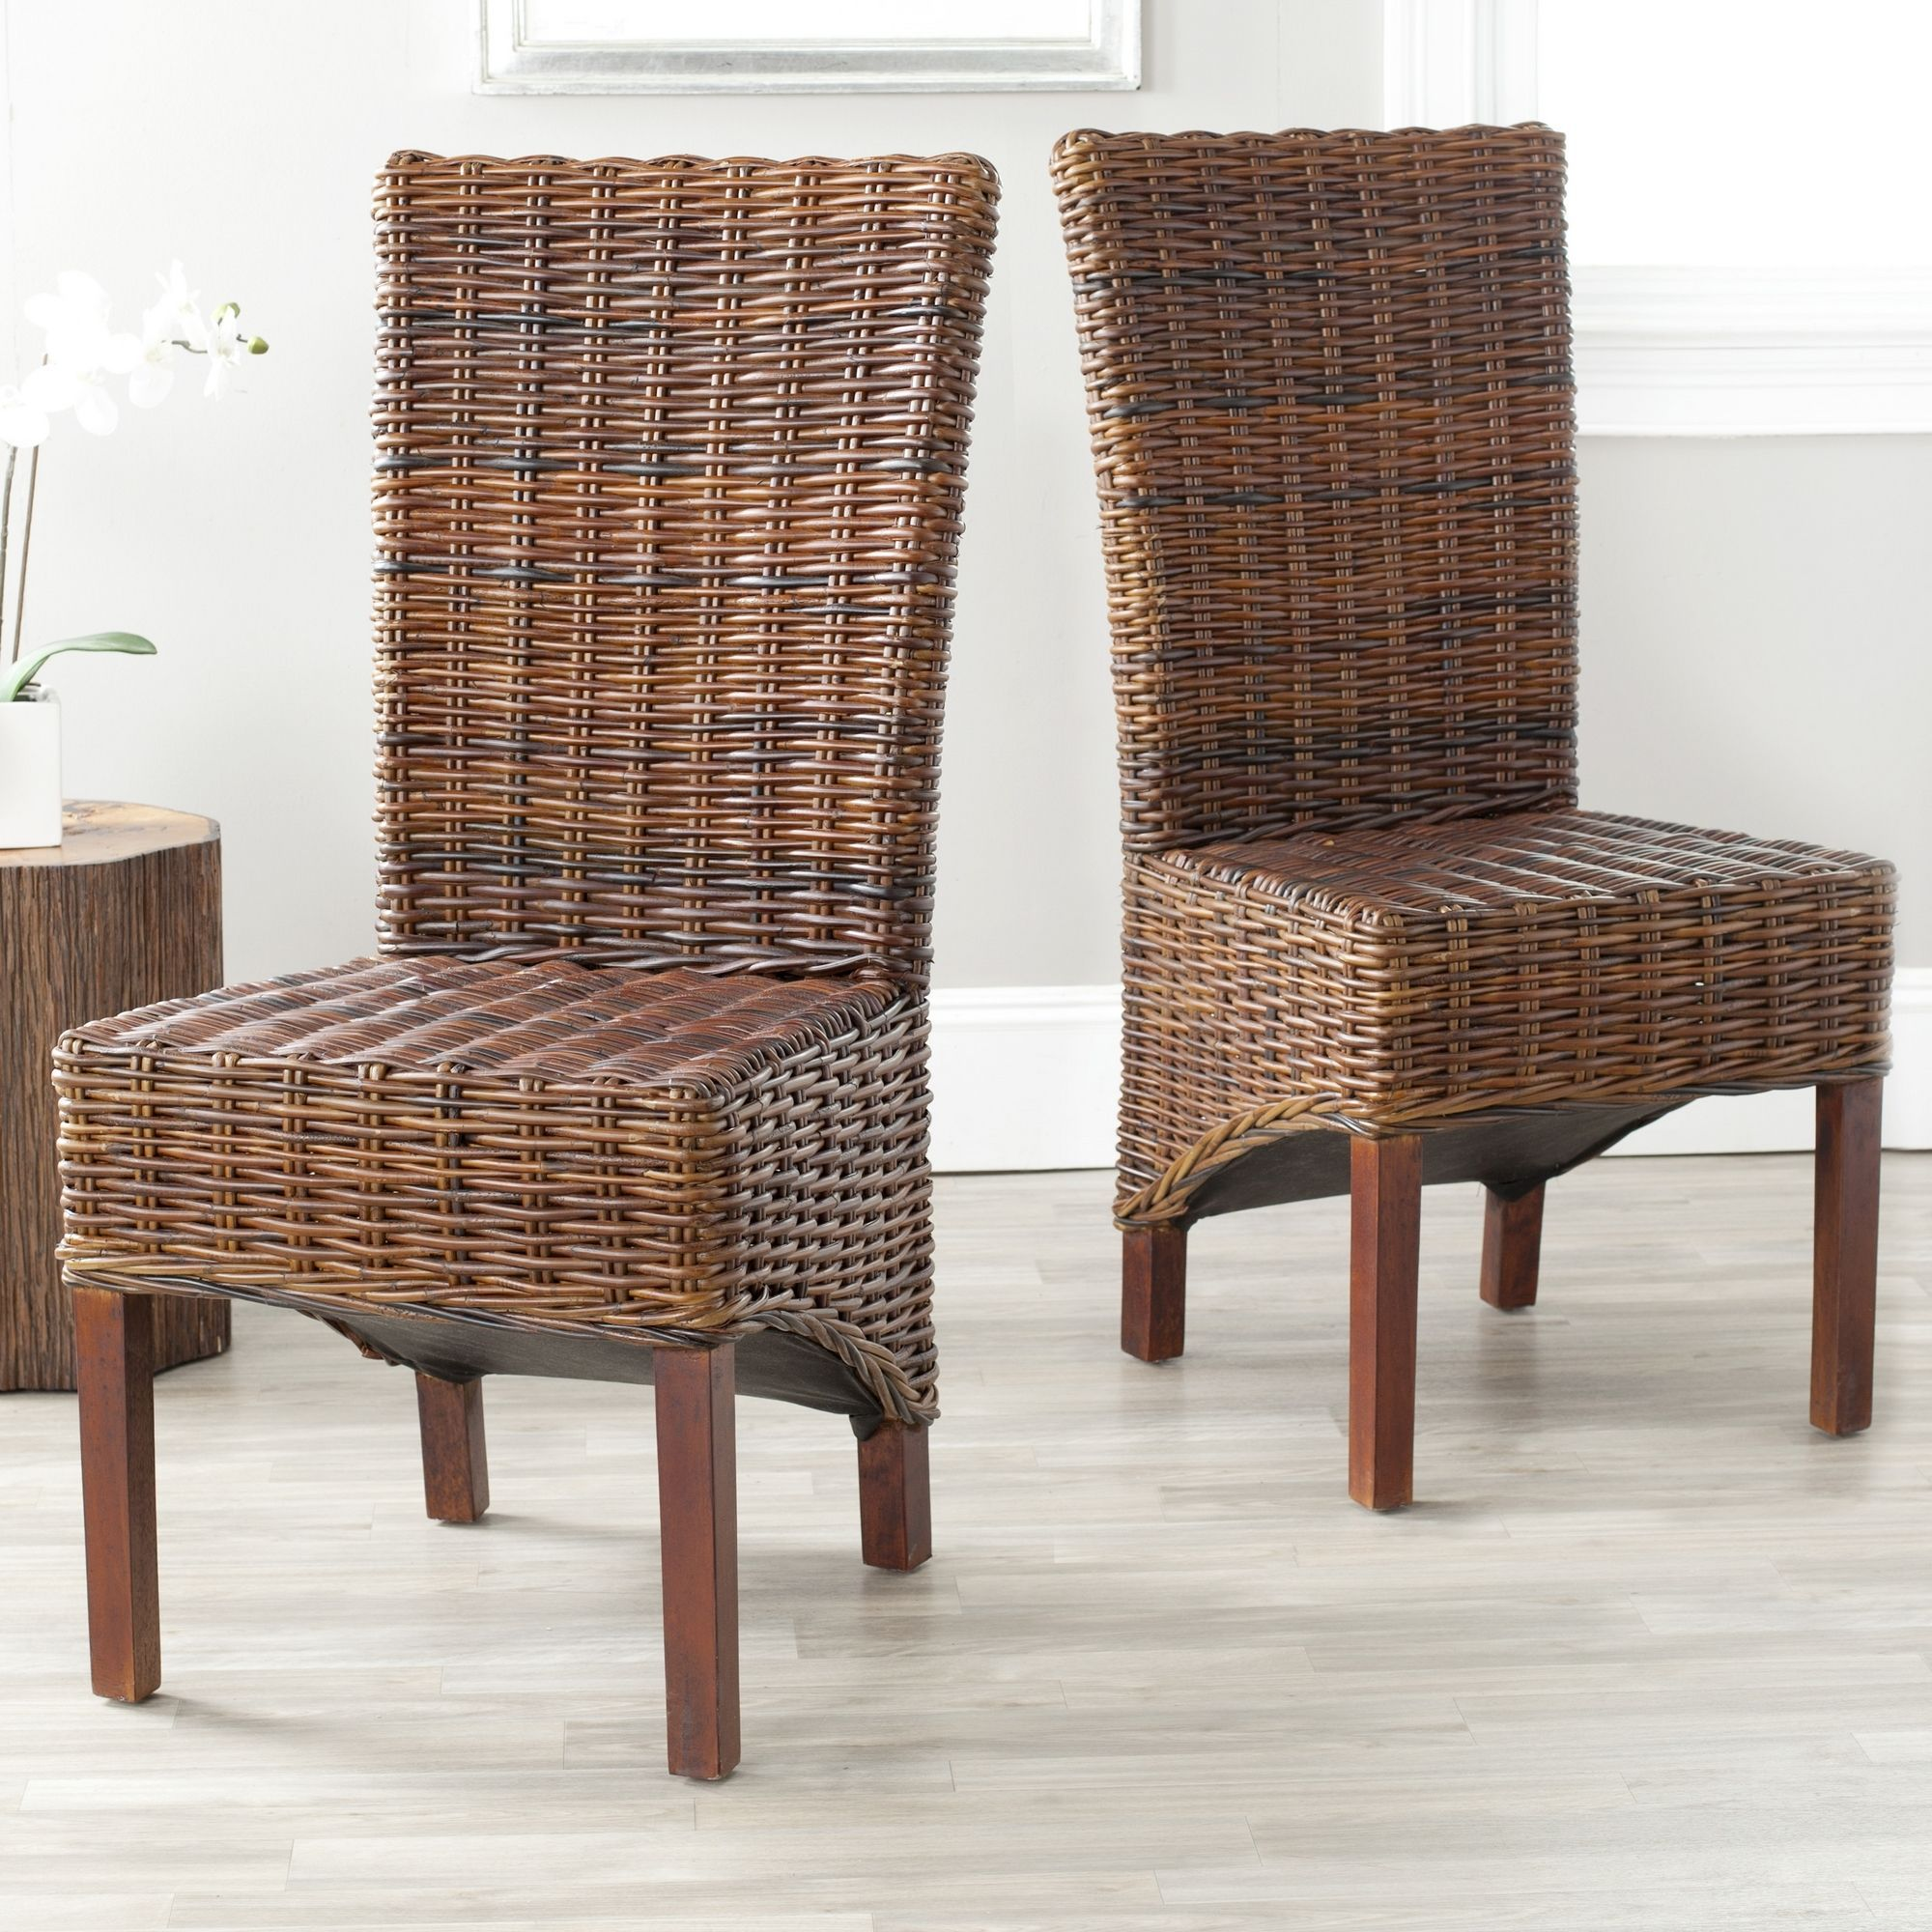 Freshen up your decor with this set of two safavieh brown rattan wicker chairs the mango wood legs and woven wicker create these sturdy seats that are